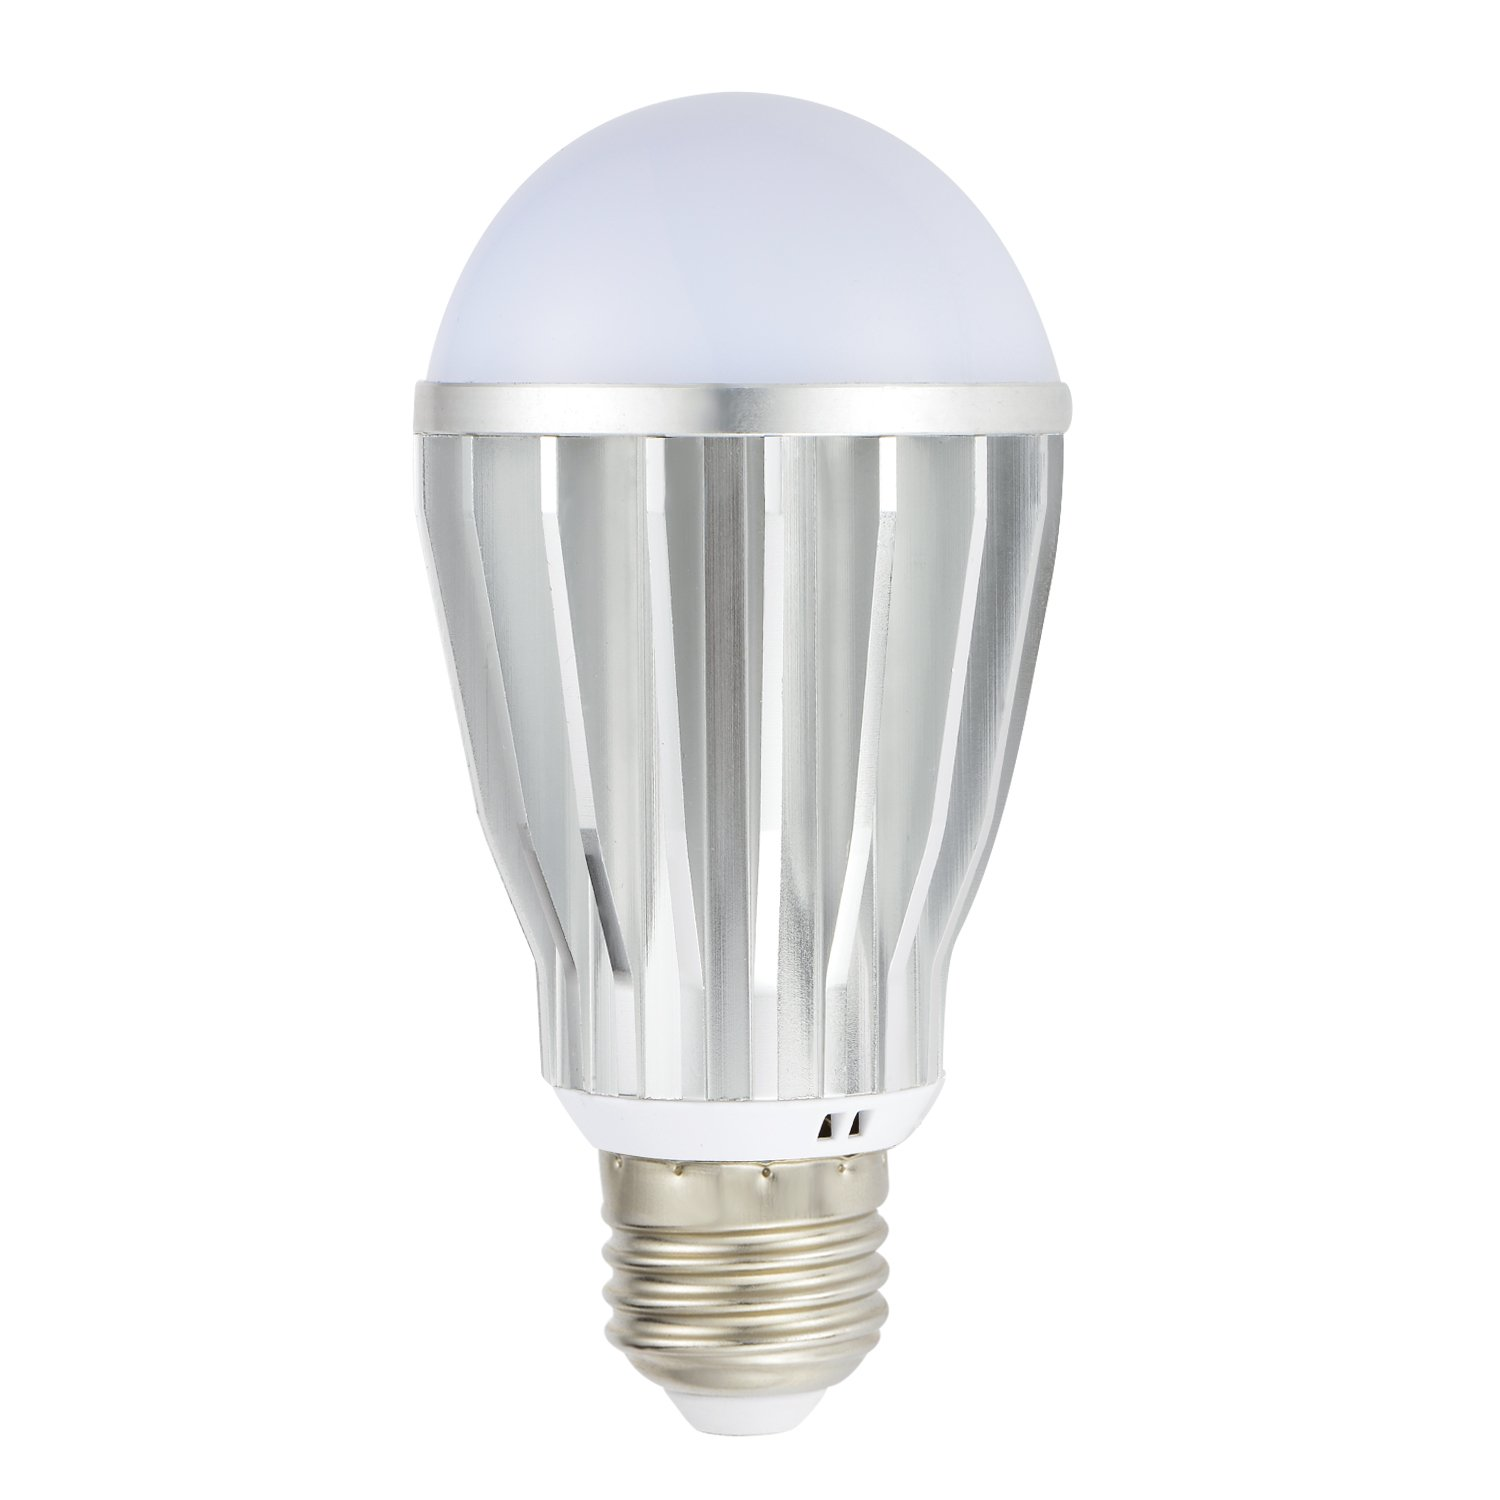 9w Daylight Dusk To Dawn Led Sensor Bulb - Automatic Turn On And Off